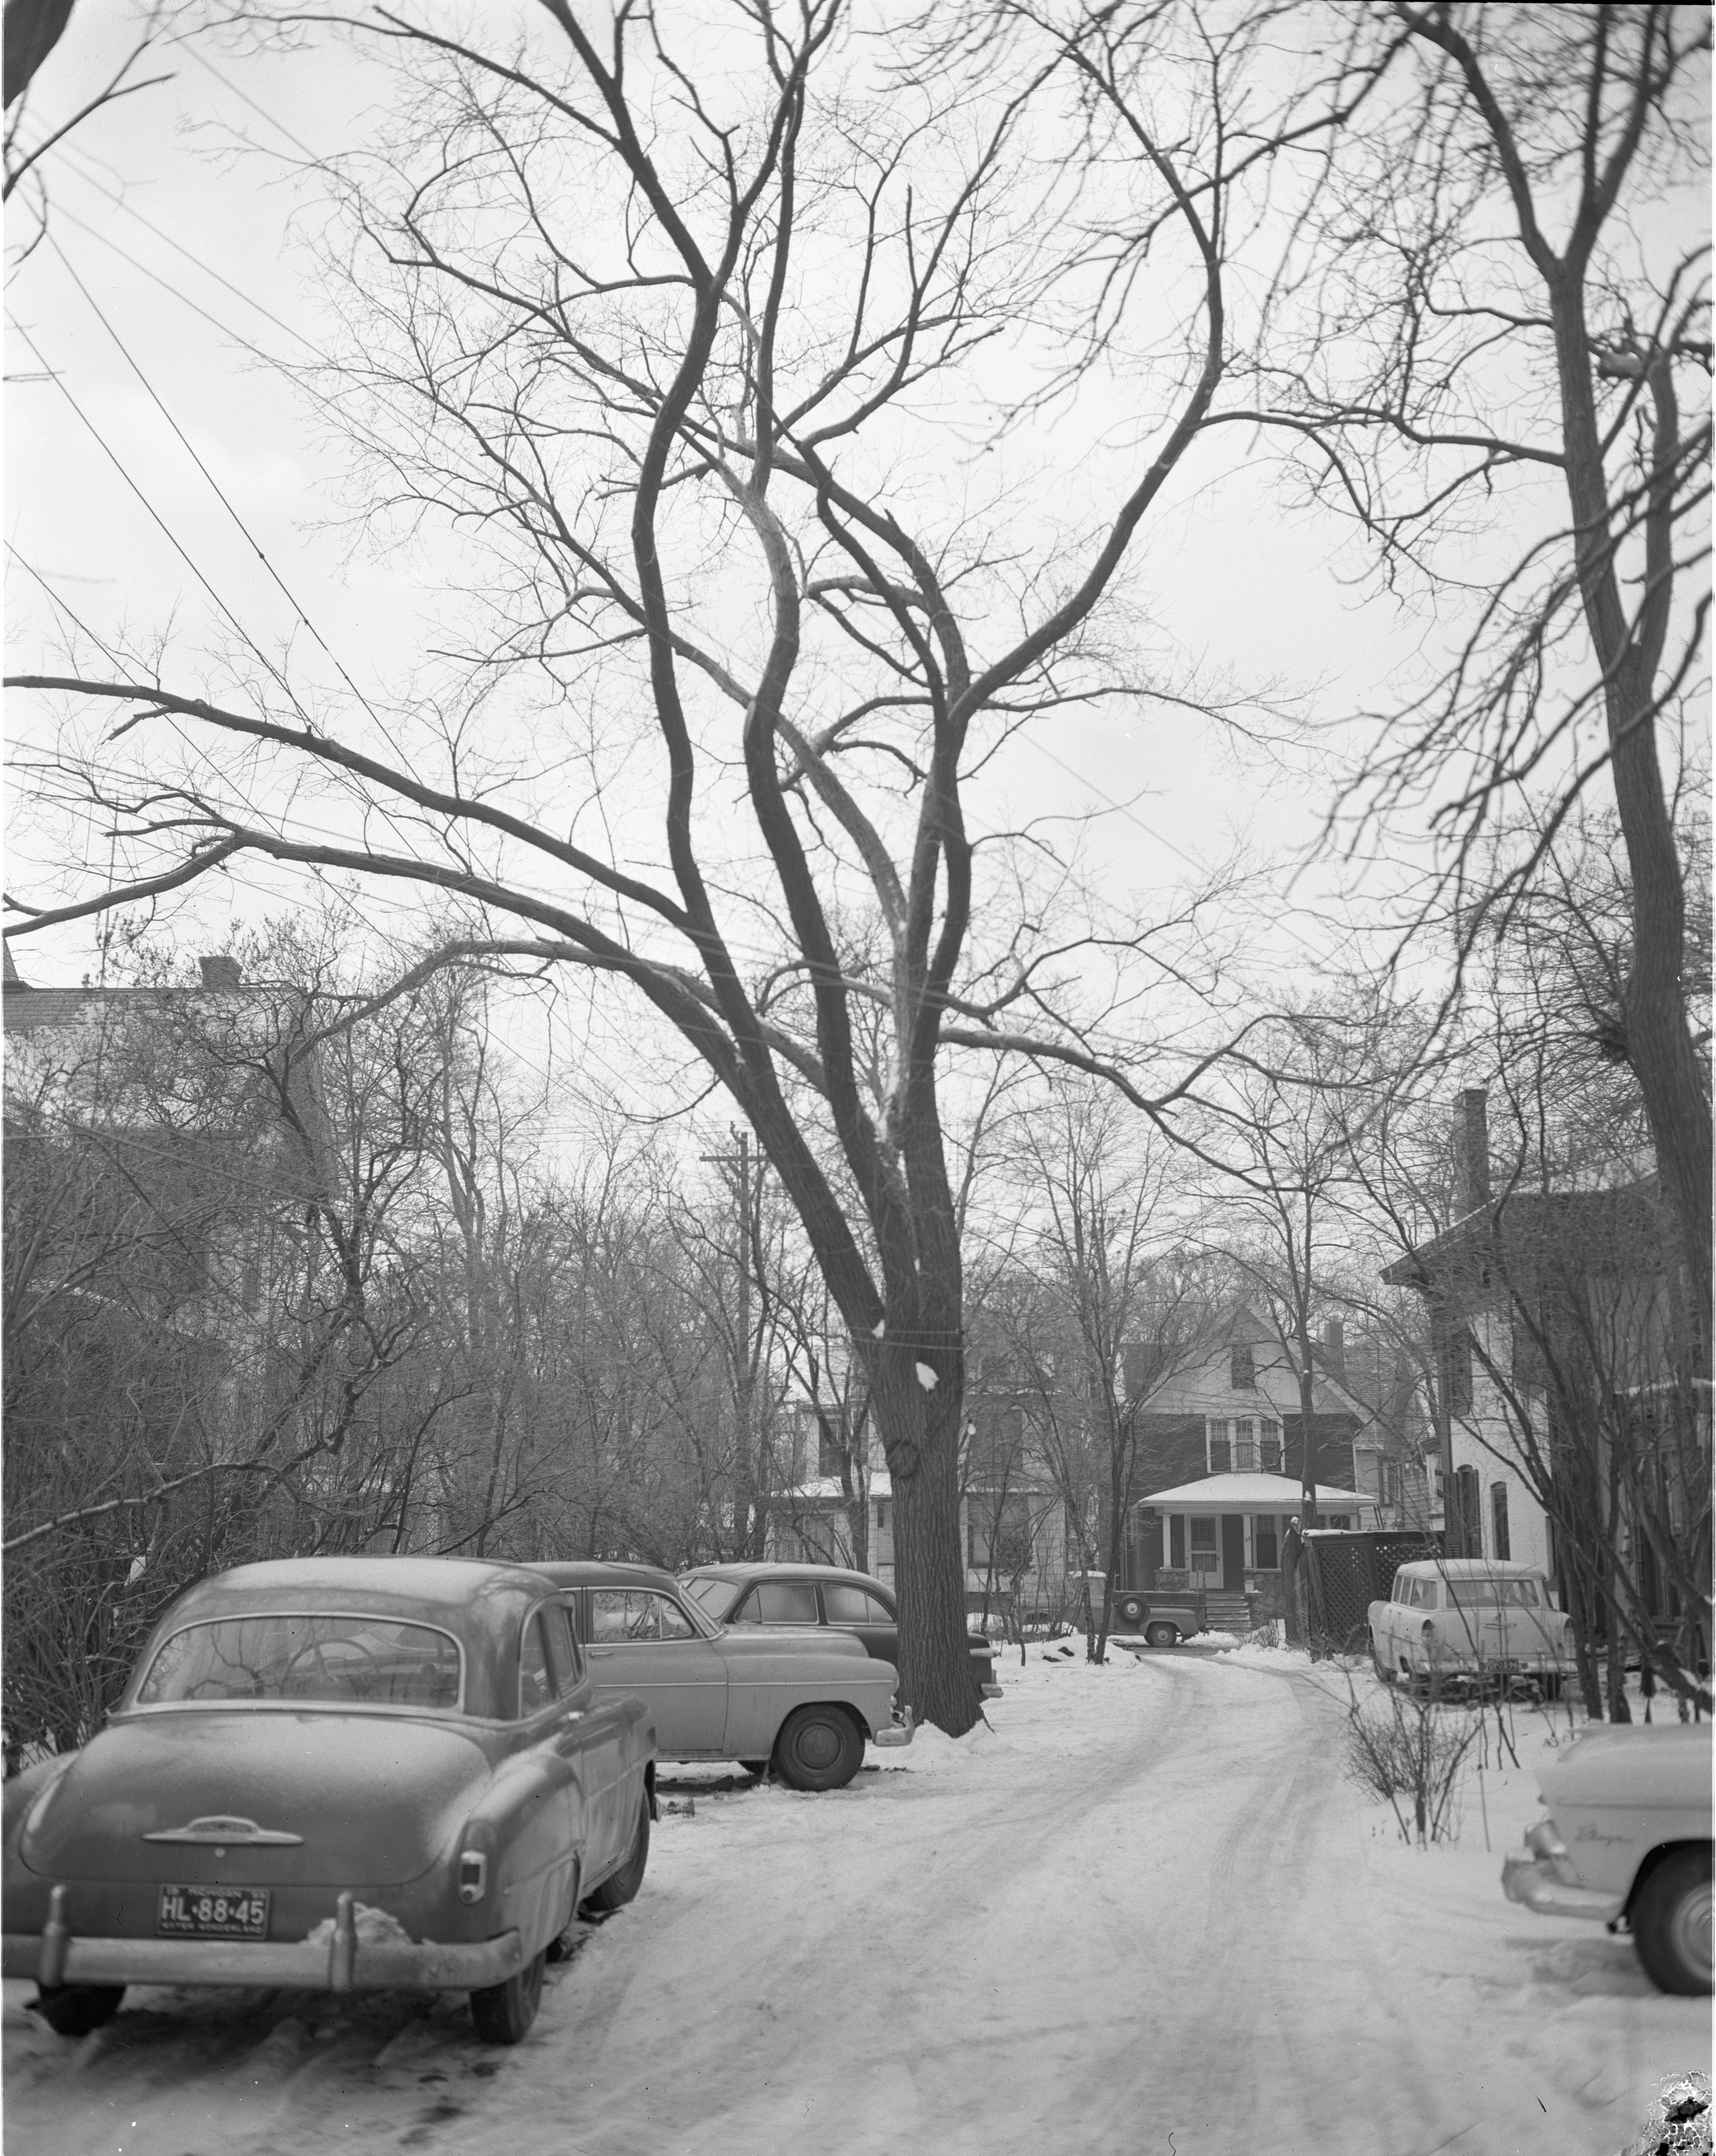 Scion Of George Washington's Elm Tree On Beal Property, February 1956 image